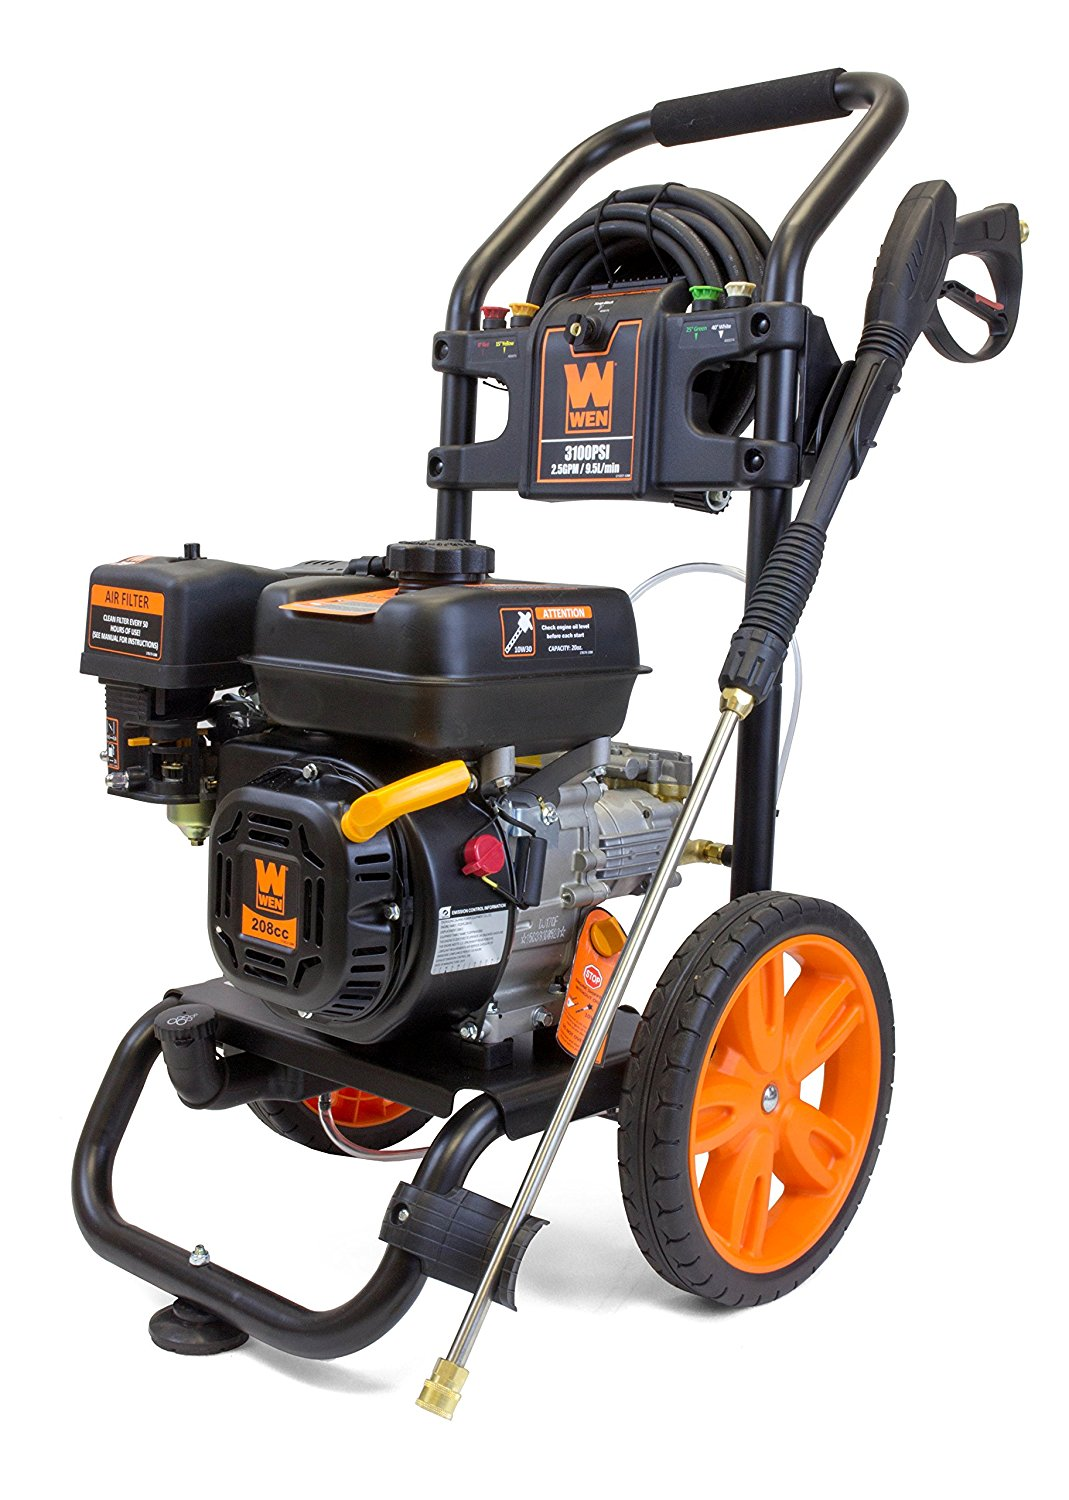 WEN PW31 3100 PSI Gas Pressure Washer, 208 cc